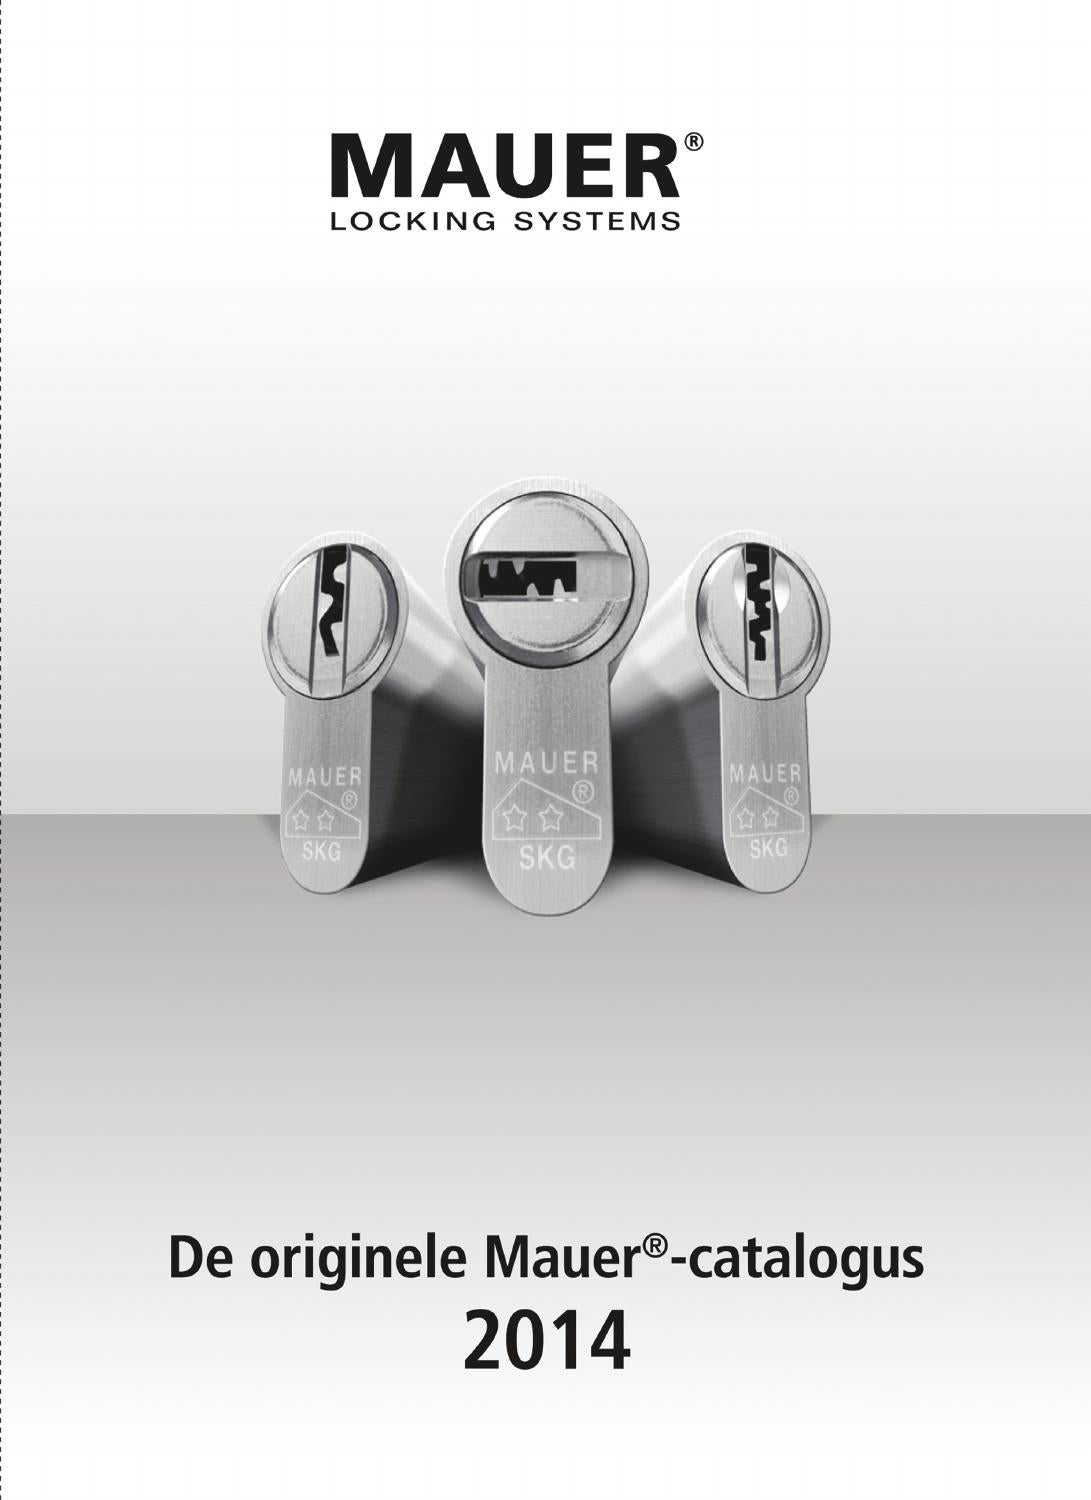 Deurbuffer Voor Stalen Kozijn Mauer Catalogus 2014 By Amyweb Issuu